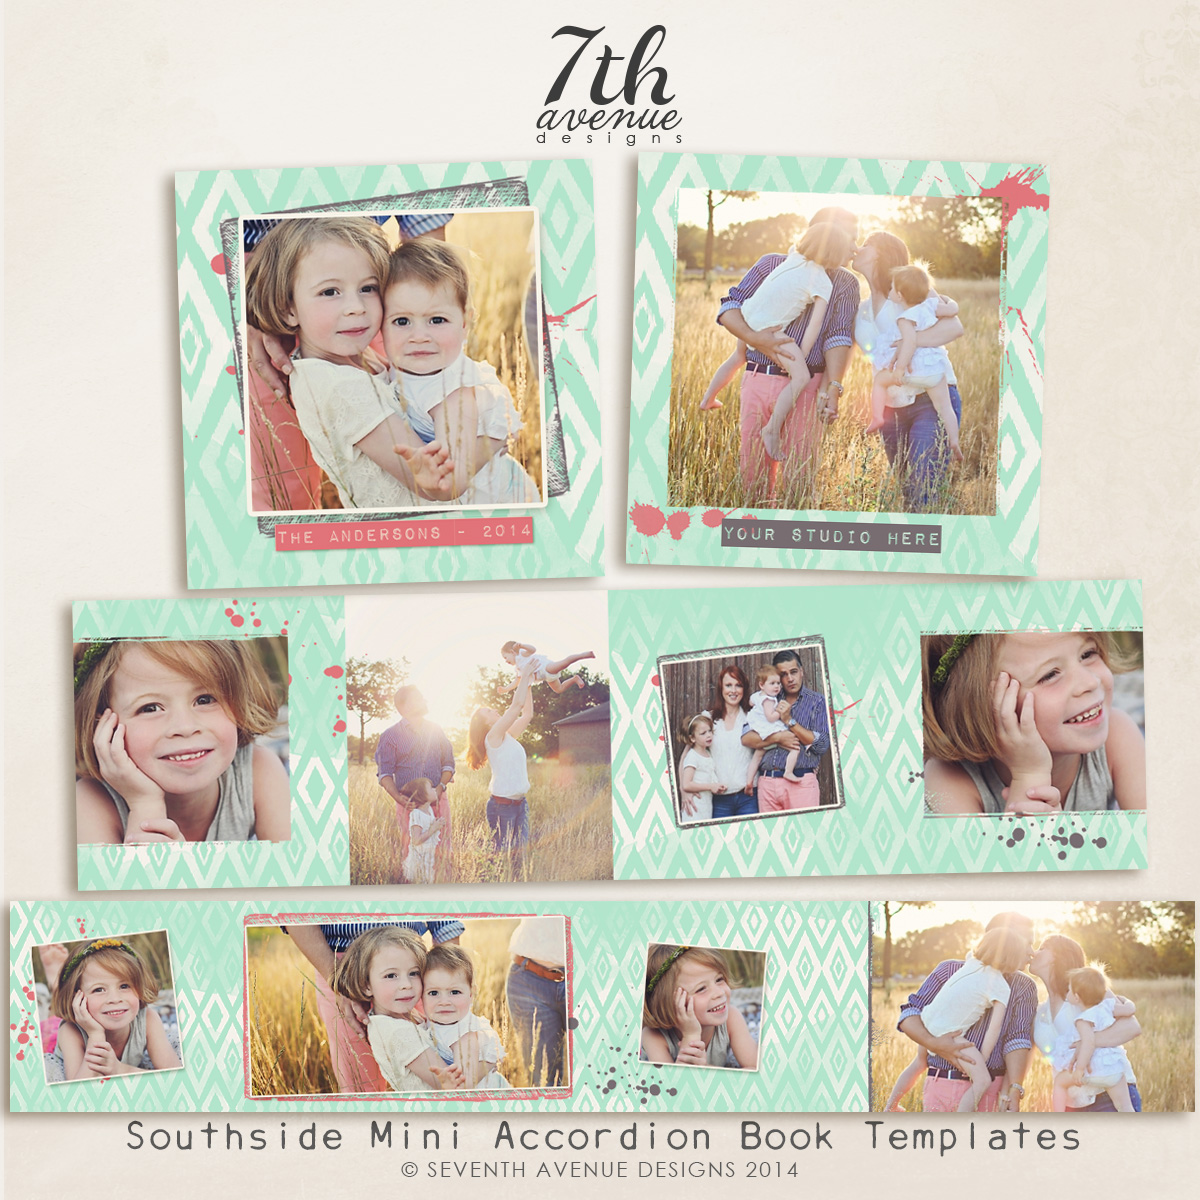 Southside 3x3 Accordion book templates